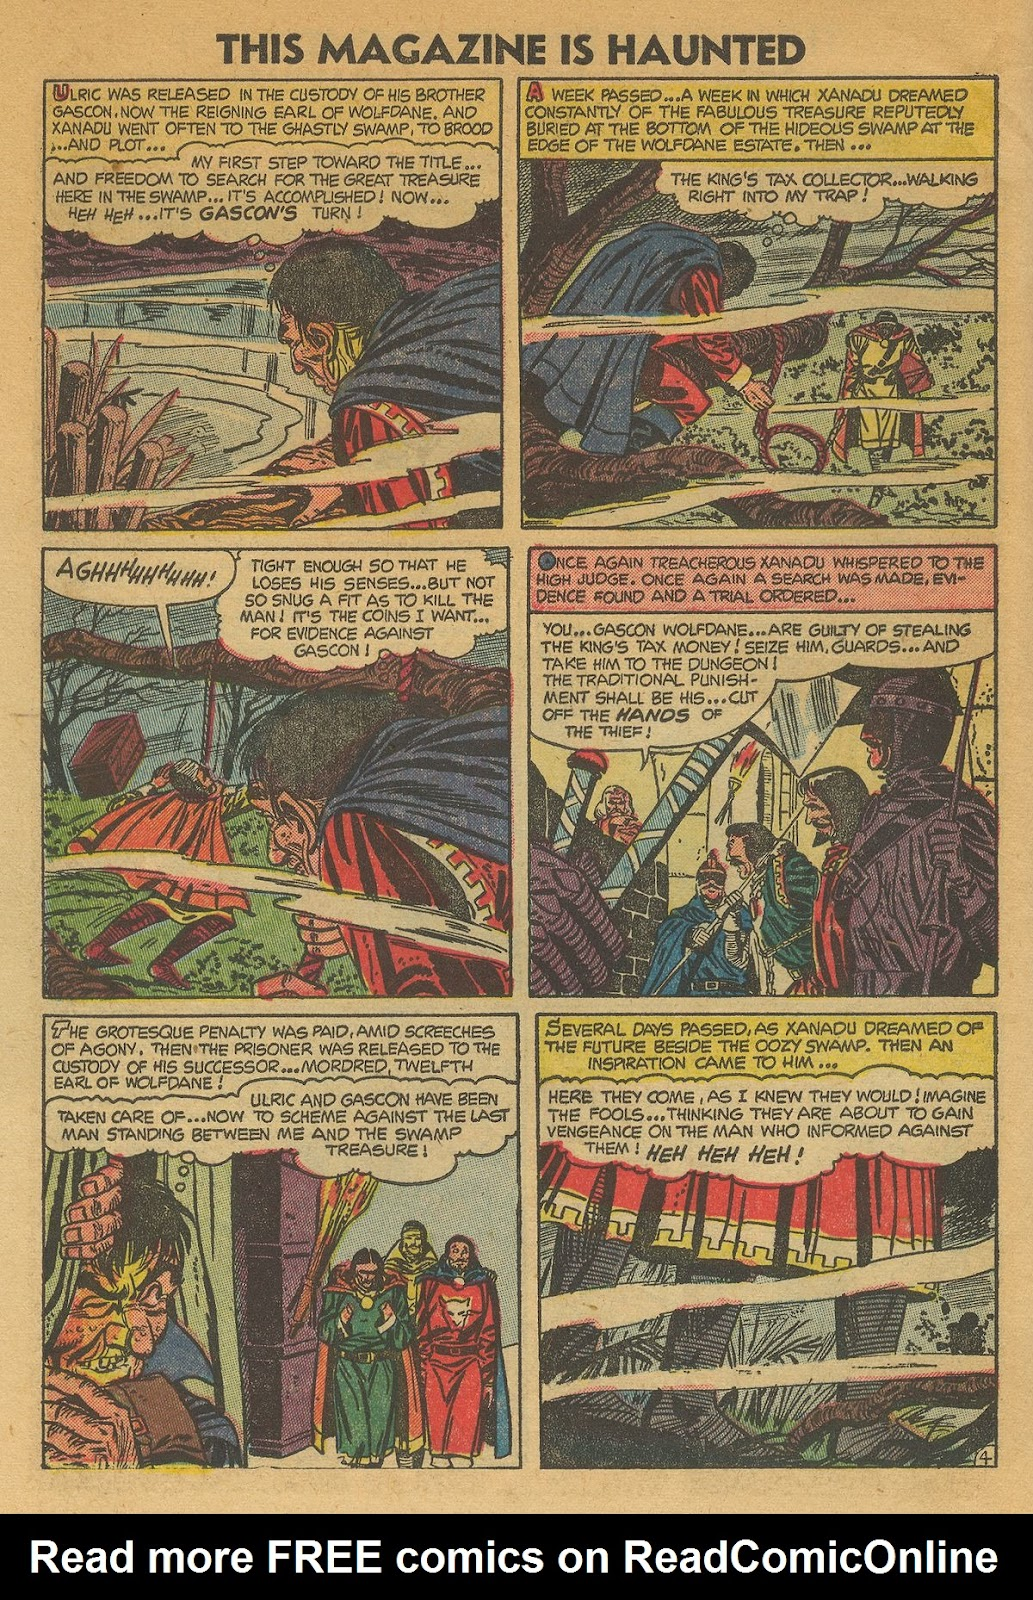 Read online This Magazine Is Haunted comic -  Issue #18 - 6